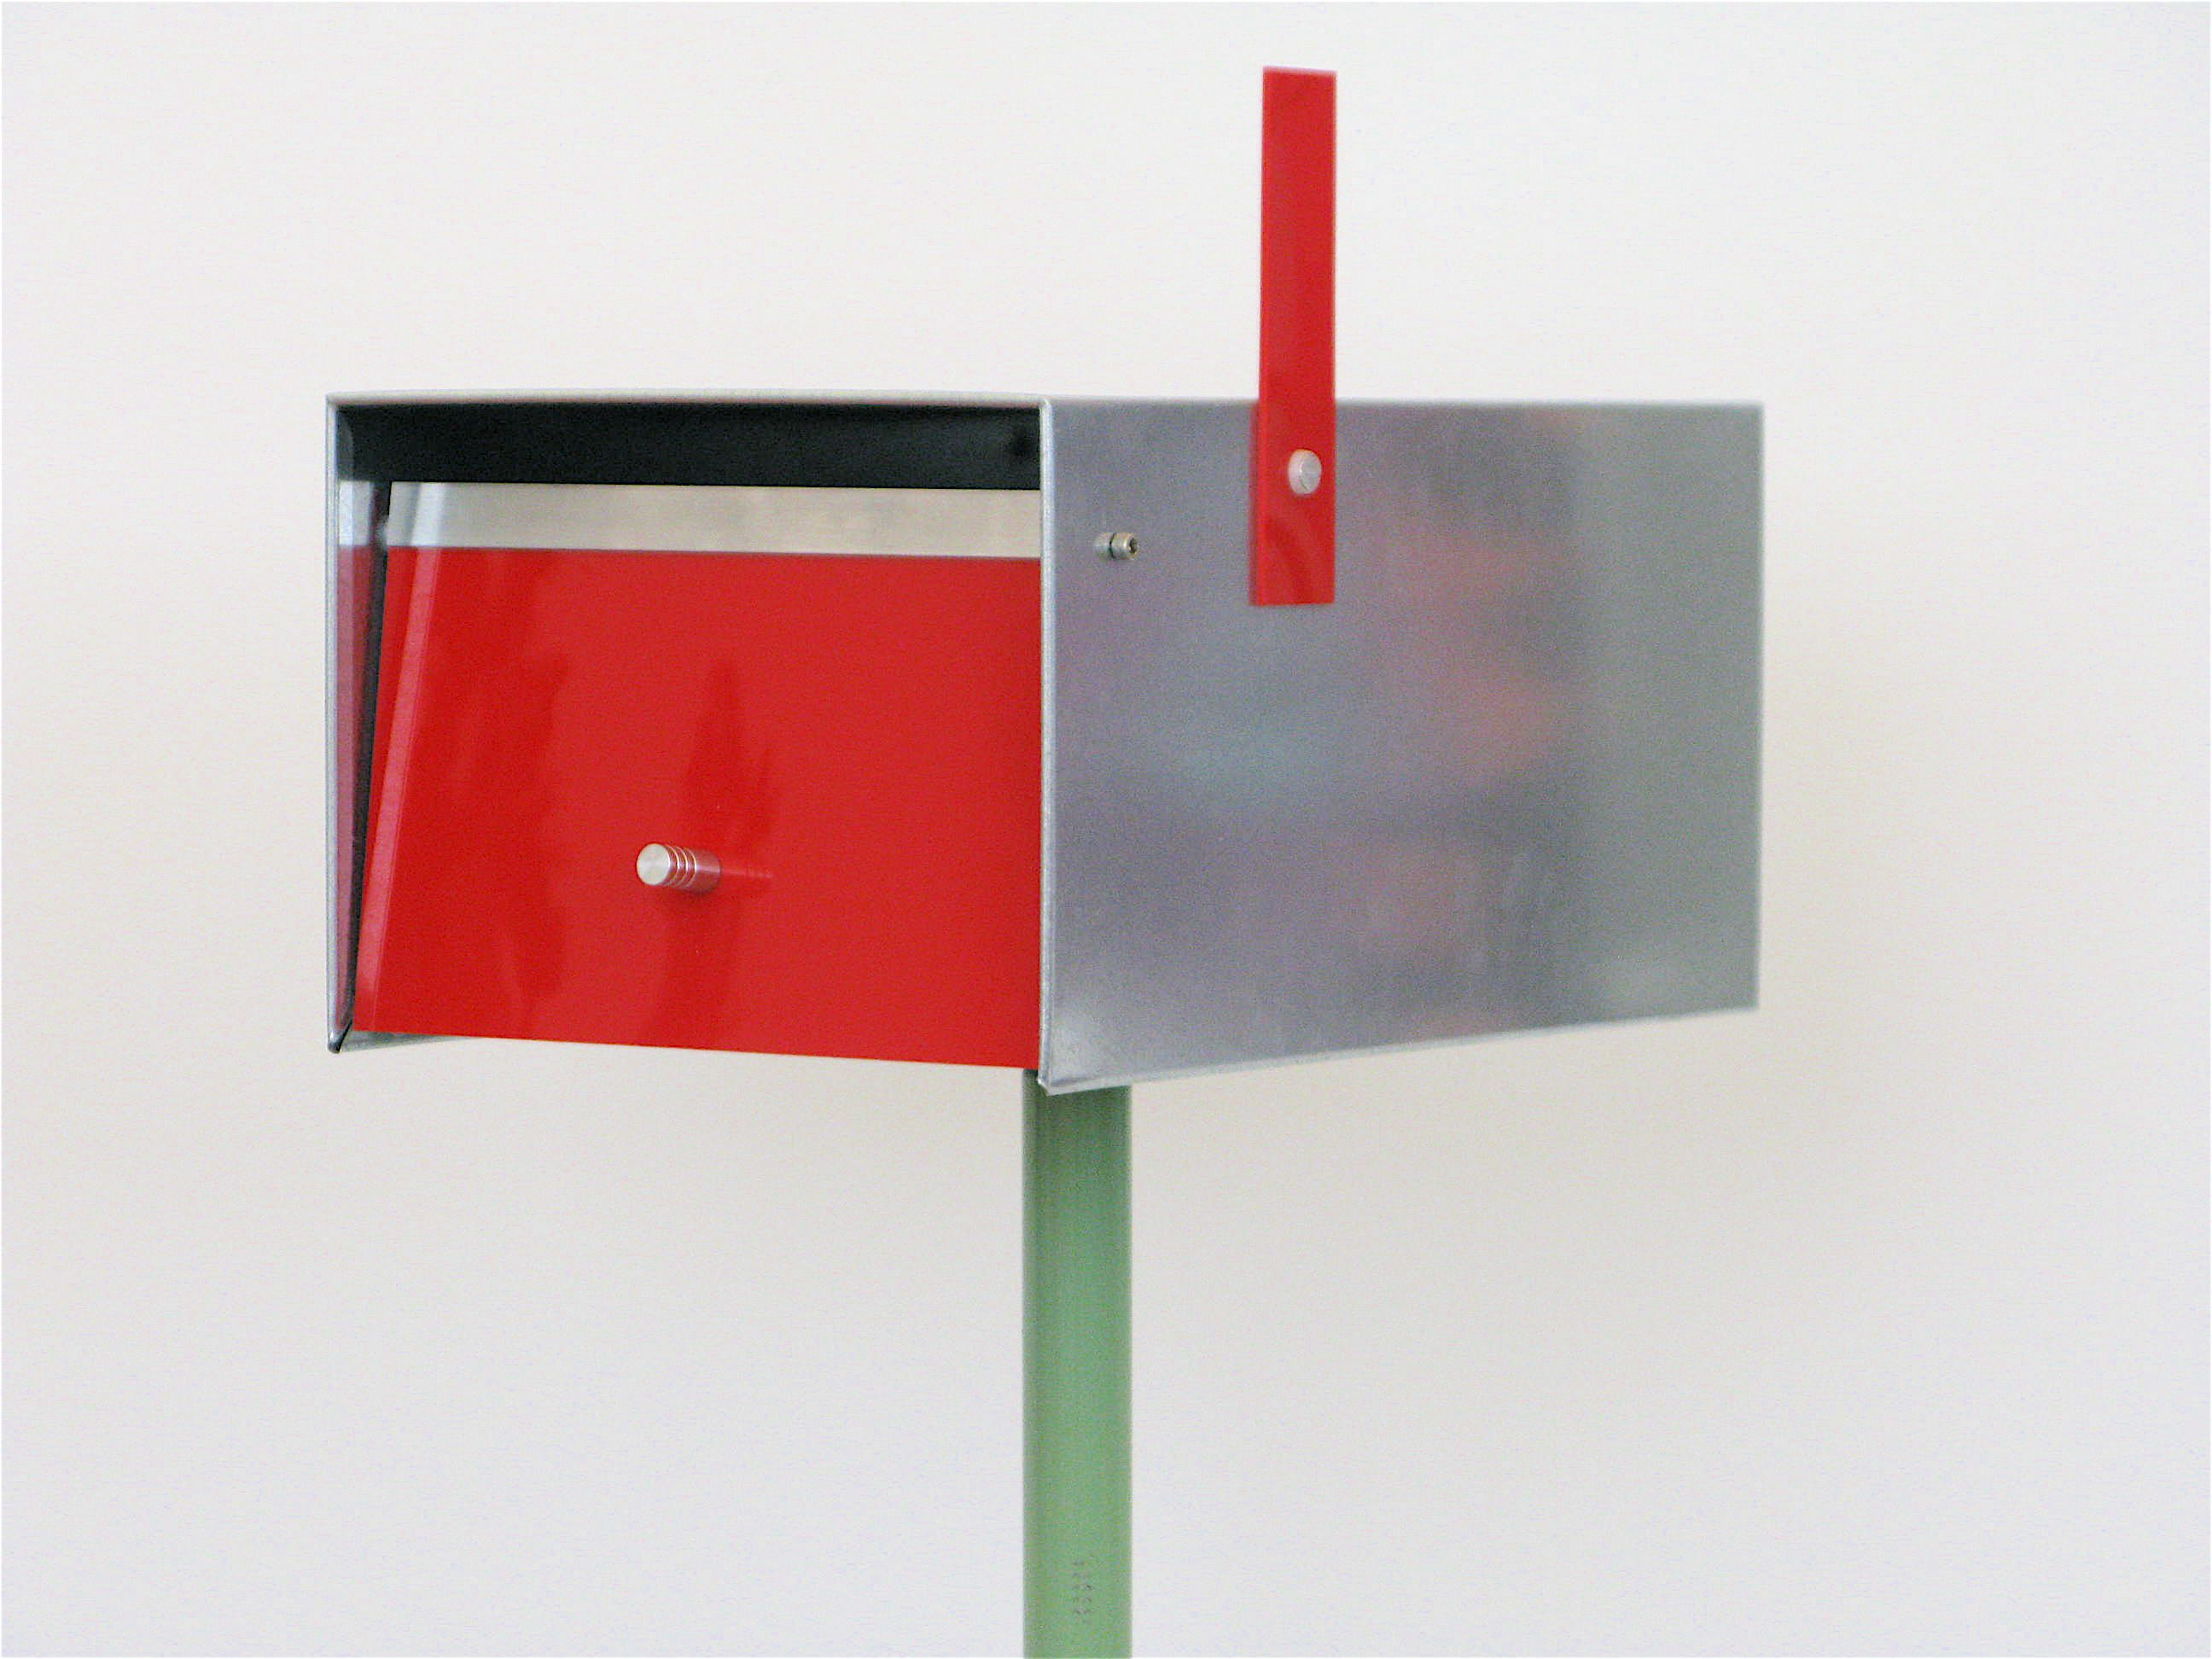 Mailboxes Modern  Interesting, Modern, Minimalist Mailbox On Post —  Livemodern: Your